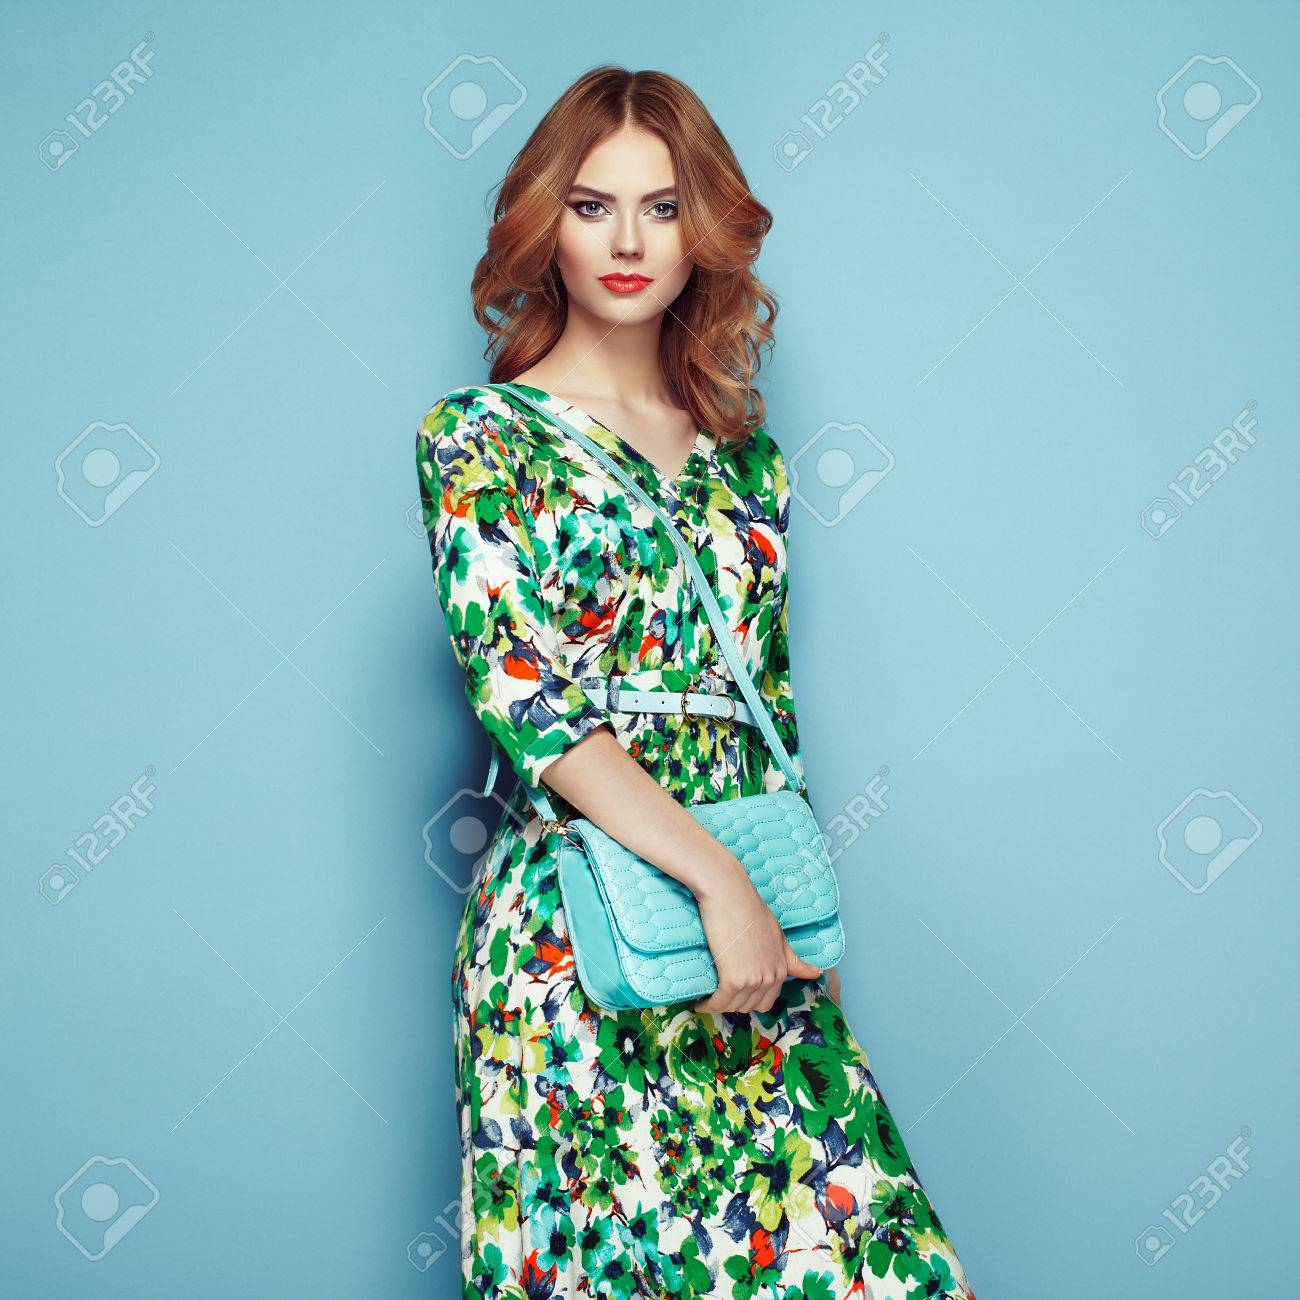 Blonde young woman in floral spring summer dress. Girl posing on a pink background. Summer floral outfit. Stylish wavy hairstyle. Fashion photo. Glamour lady with handbag - 77028799